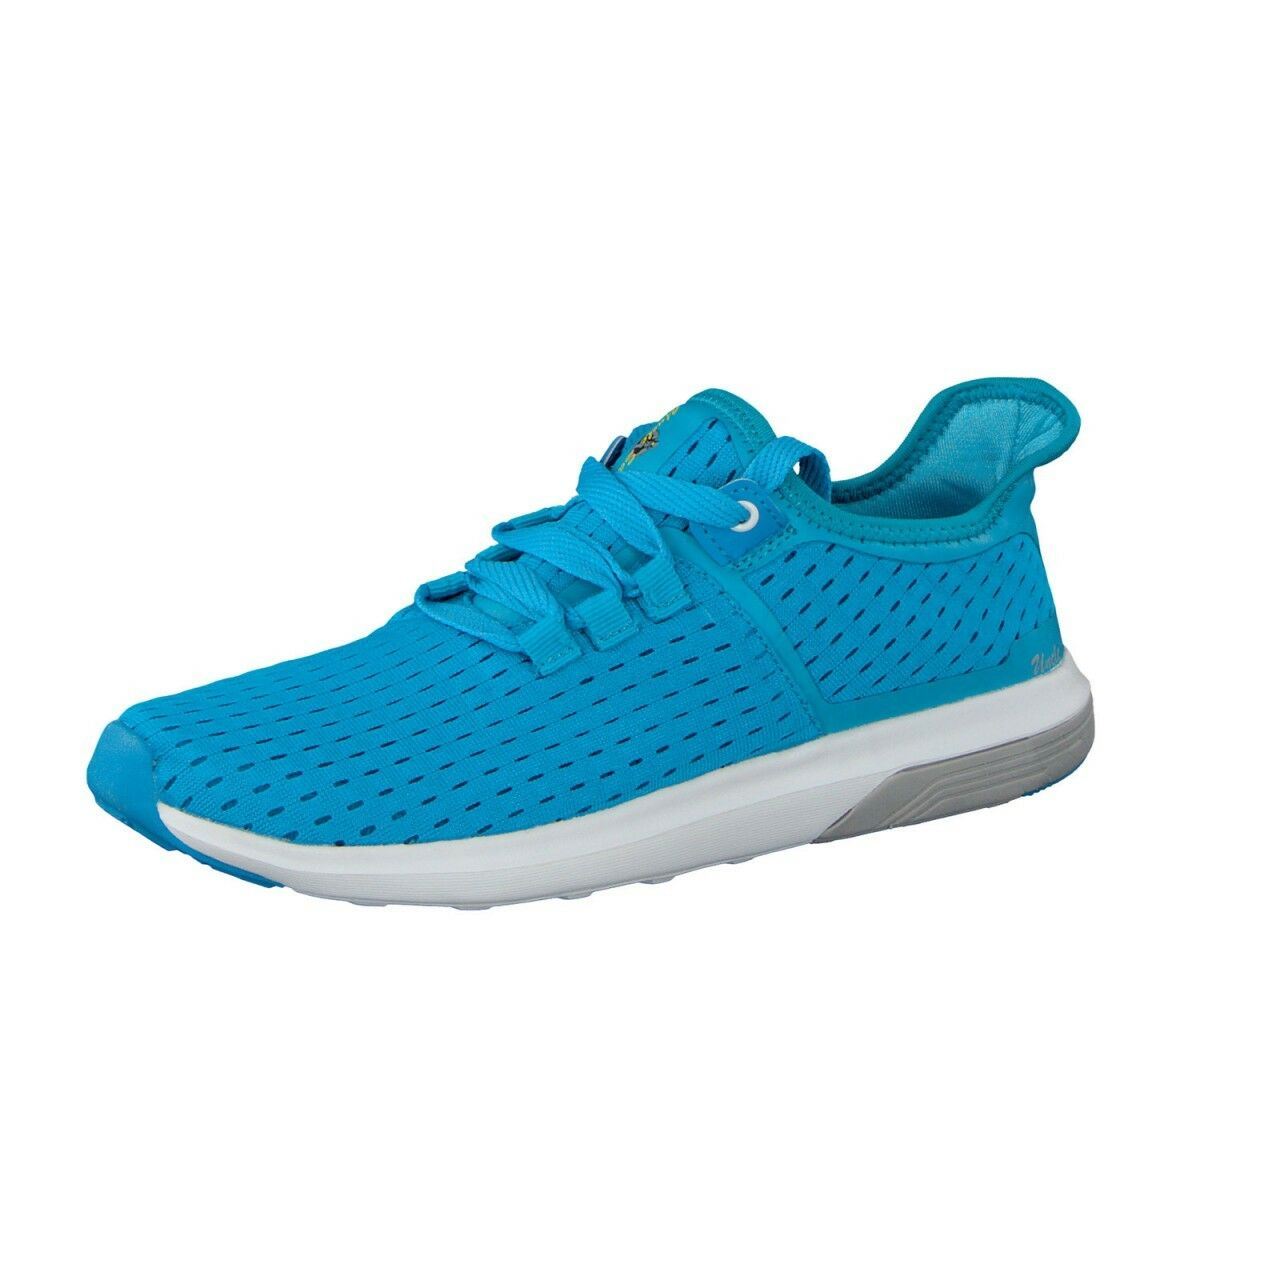 Uncle Sam Ladies Lightweight Running shoes in Turquoise